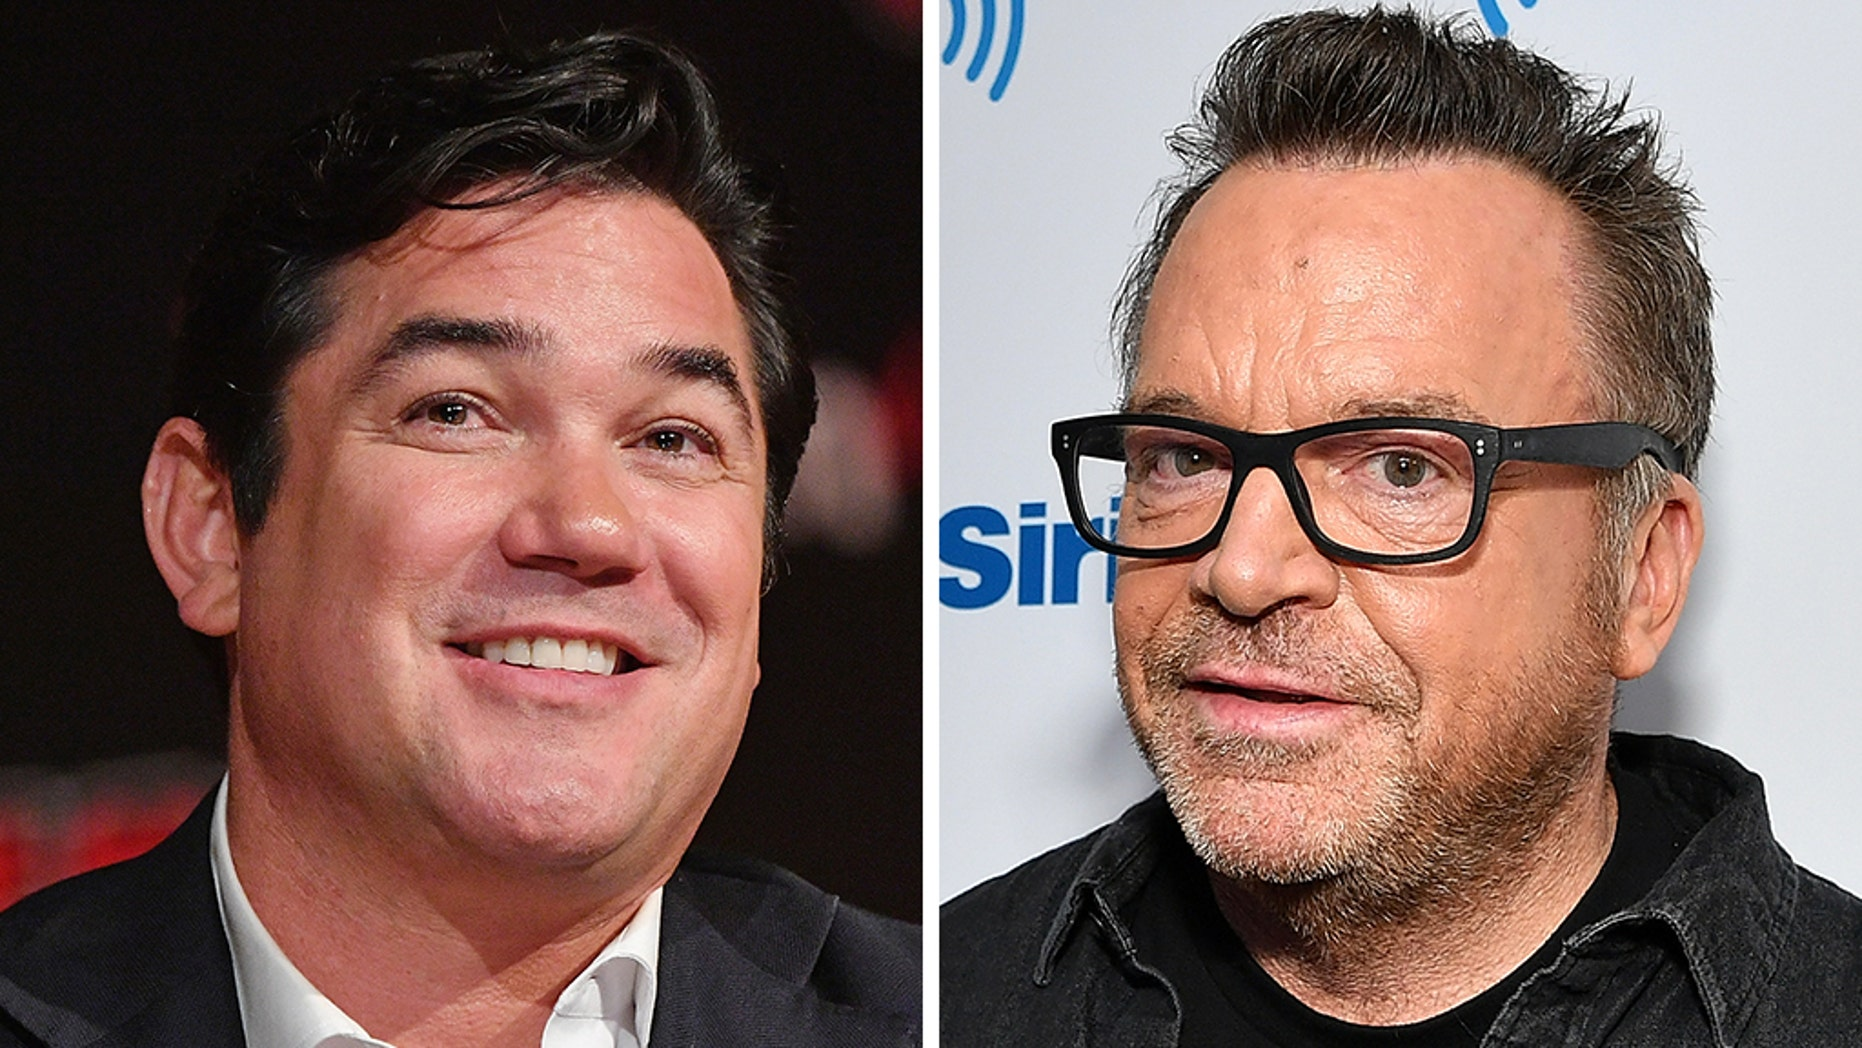 Dean Cain and Tom Arnold got into a fight about politics and President Trump - and it was recorded on video.